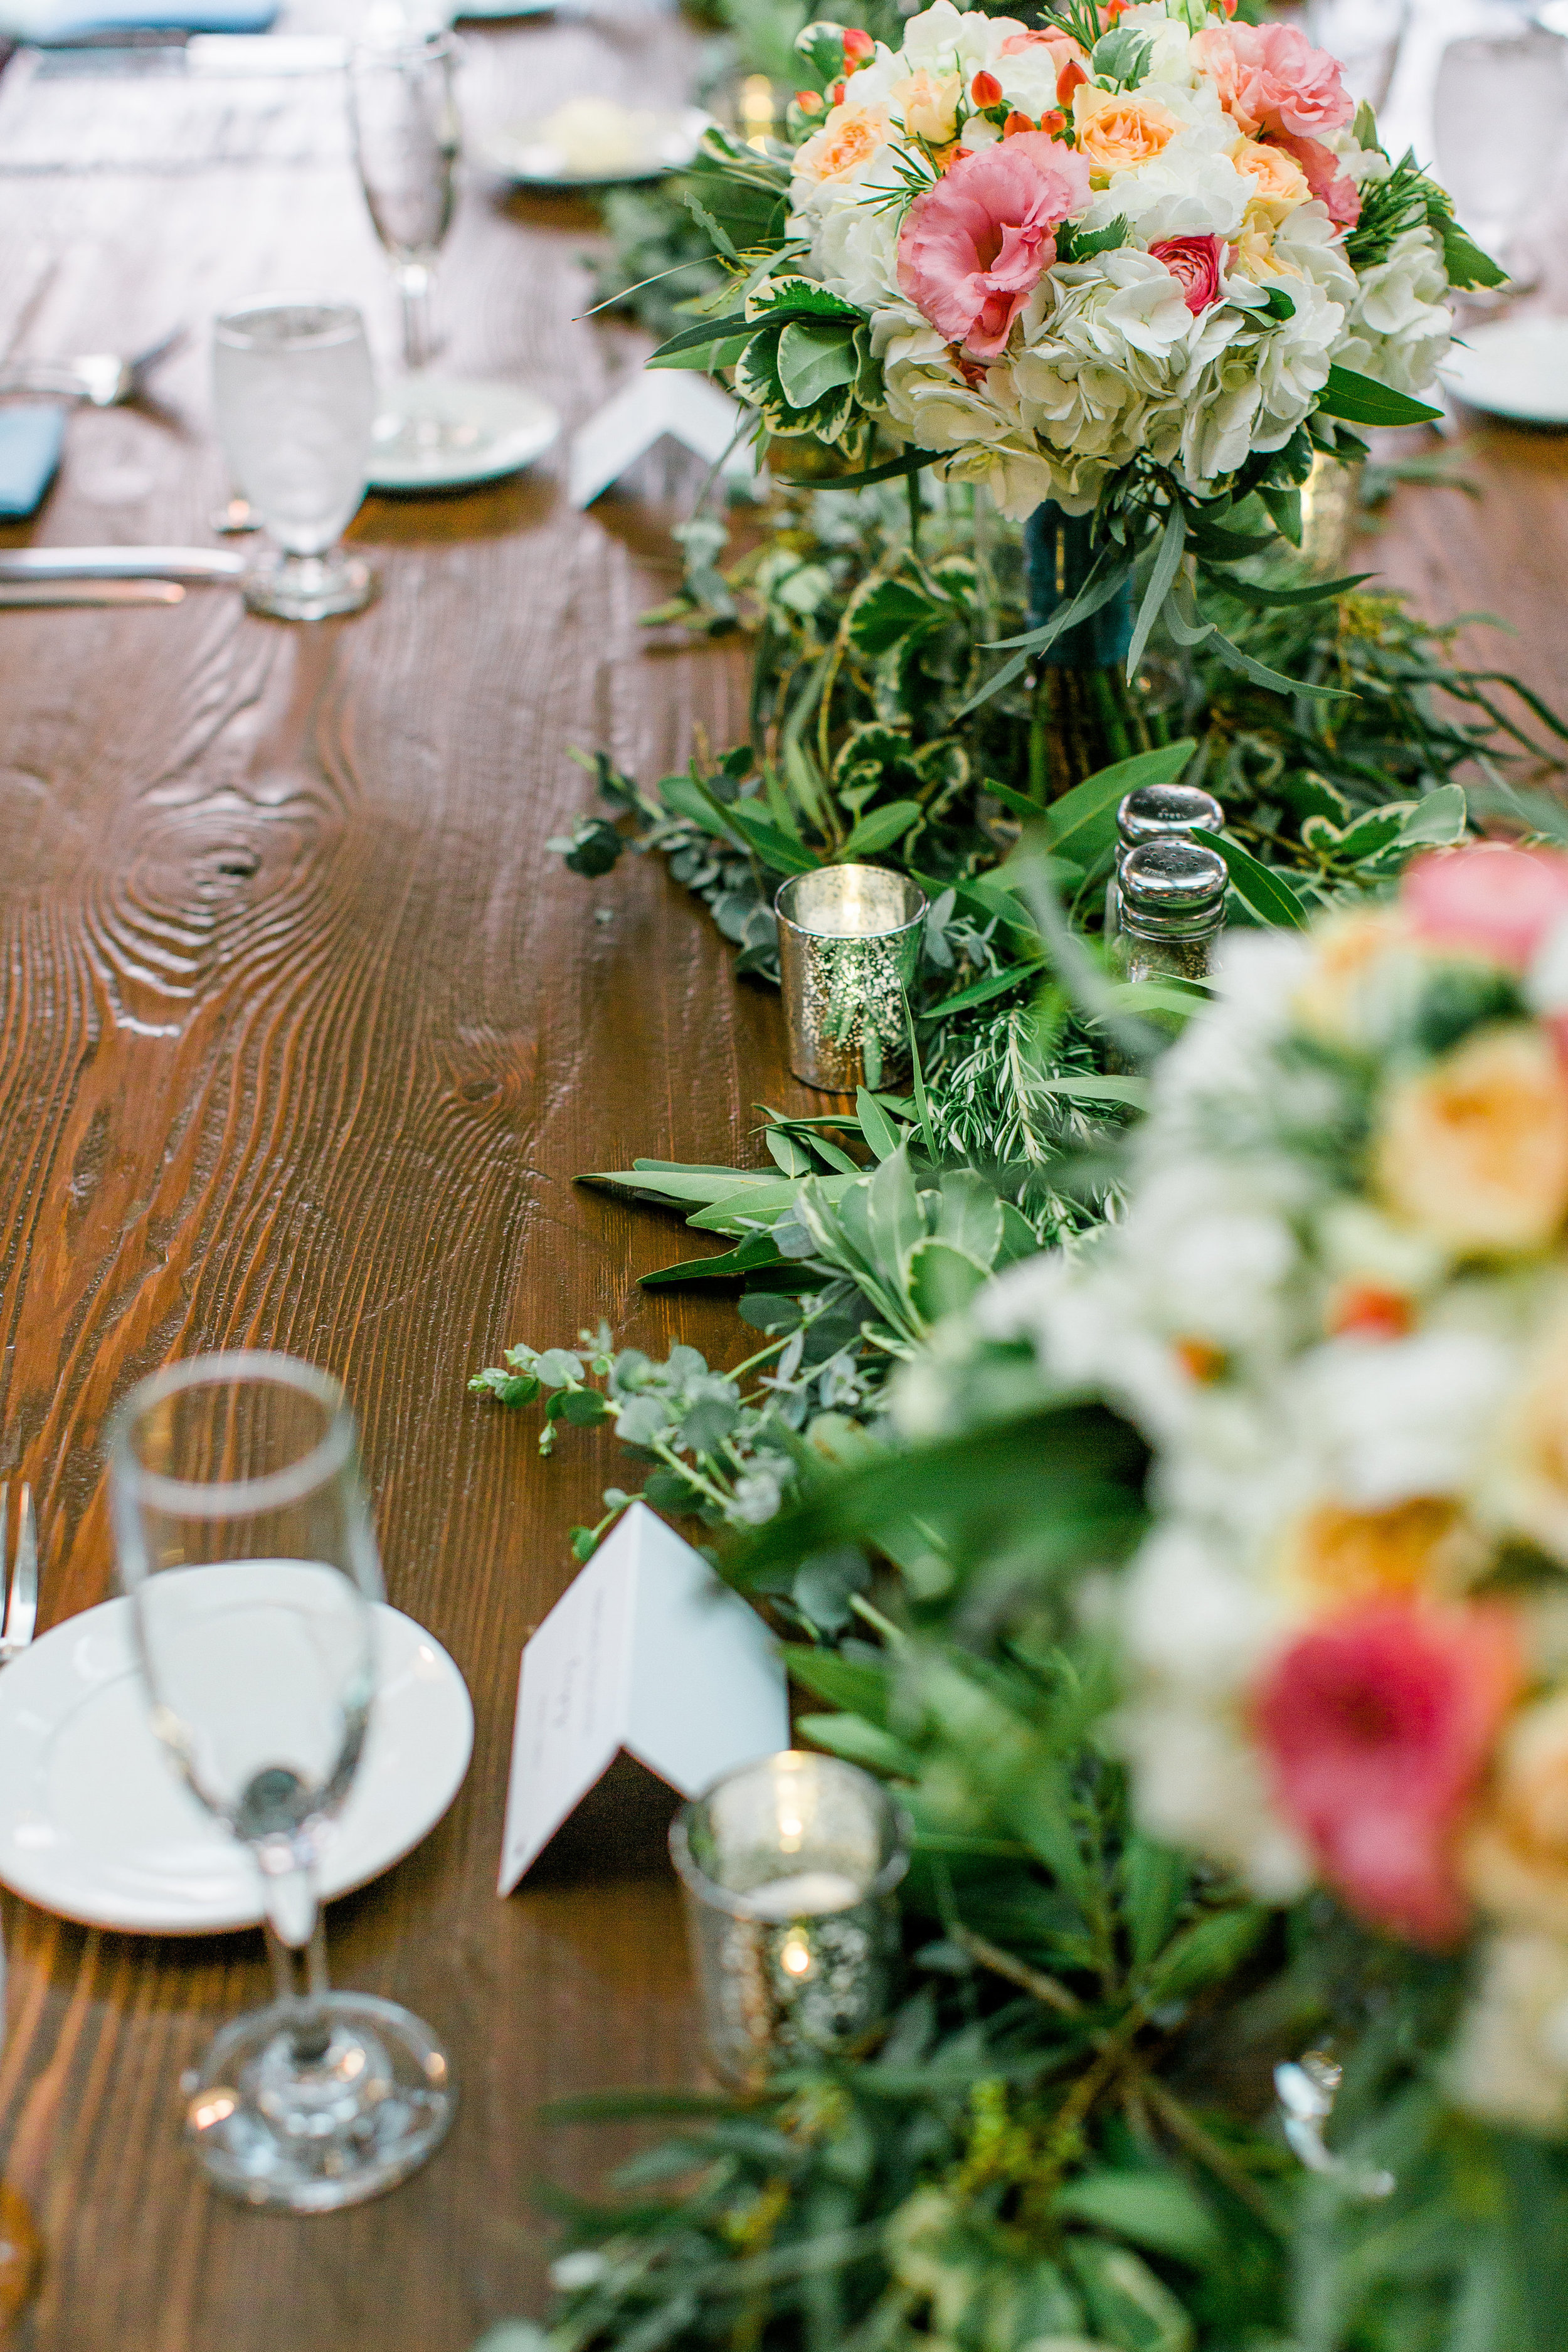 Wedding centerpiece floral greenery tablescape at Minneapolis Event Centers wedding rustic charm